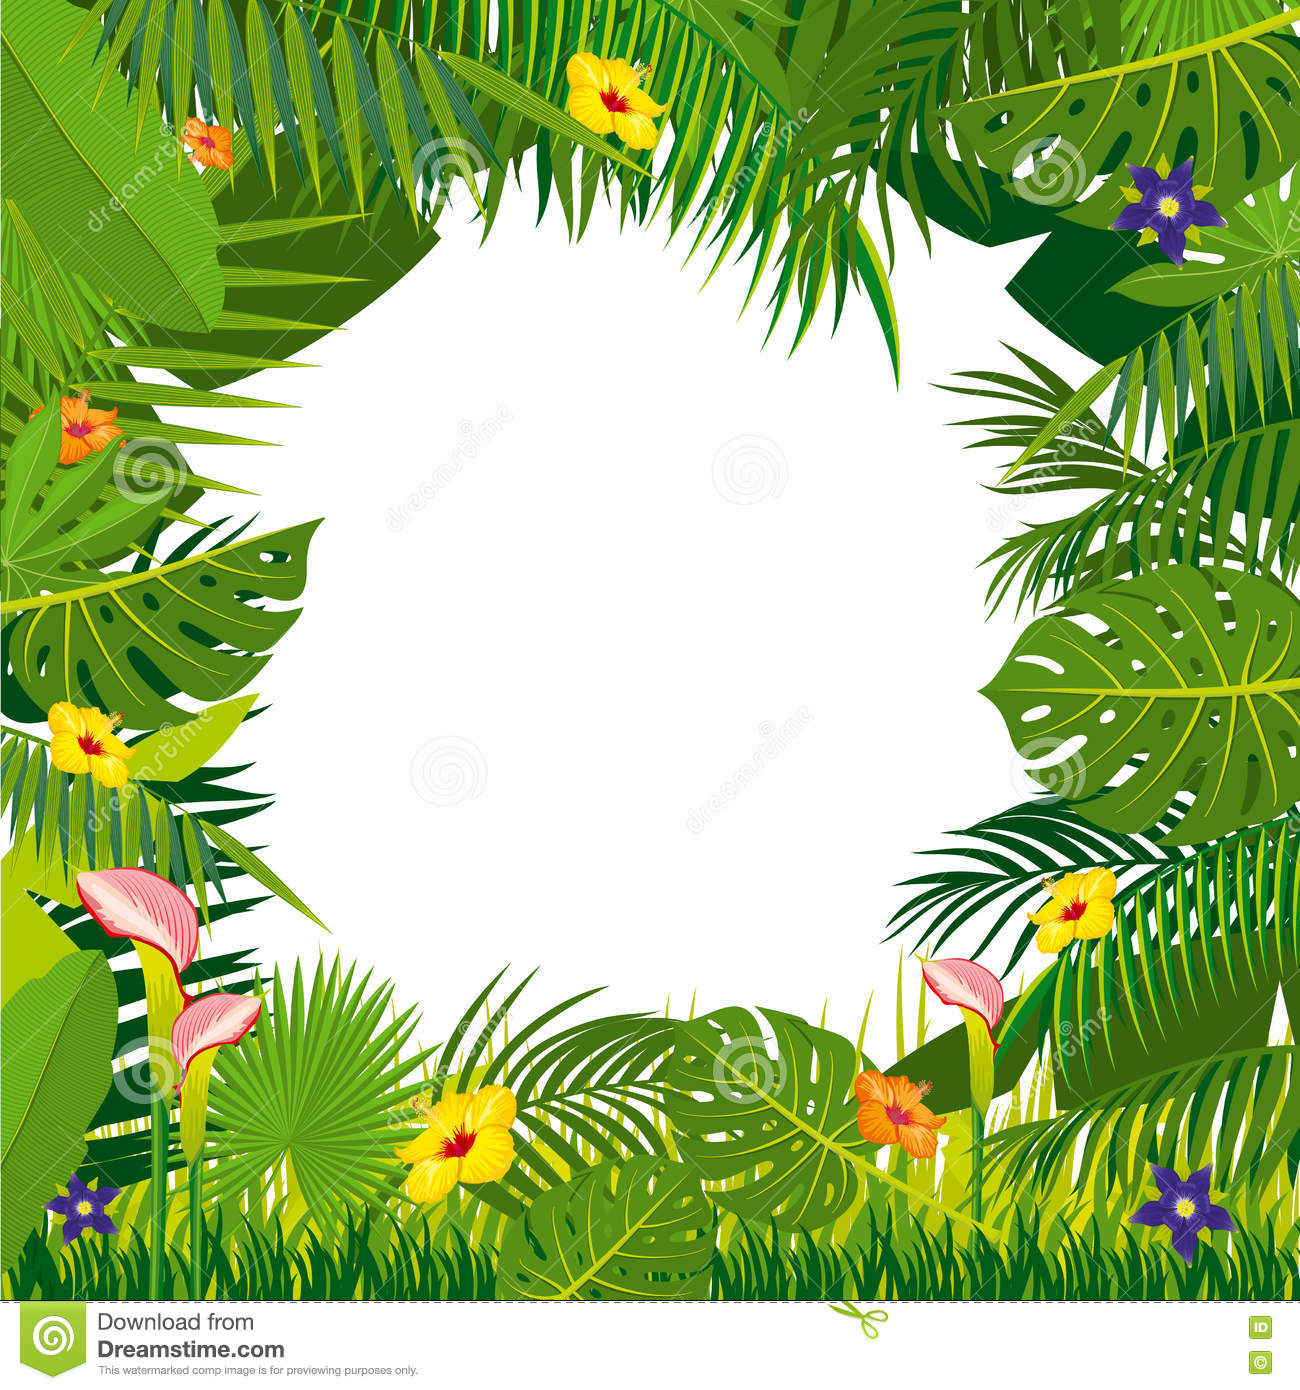 Jungle Vector Background With Palm Tree Leaves Stock